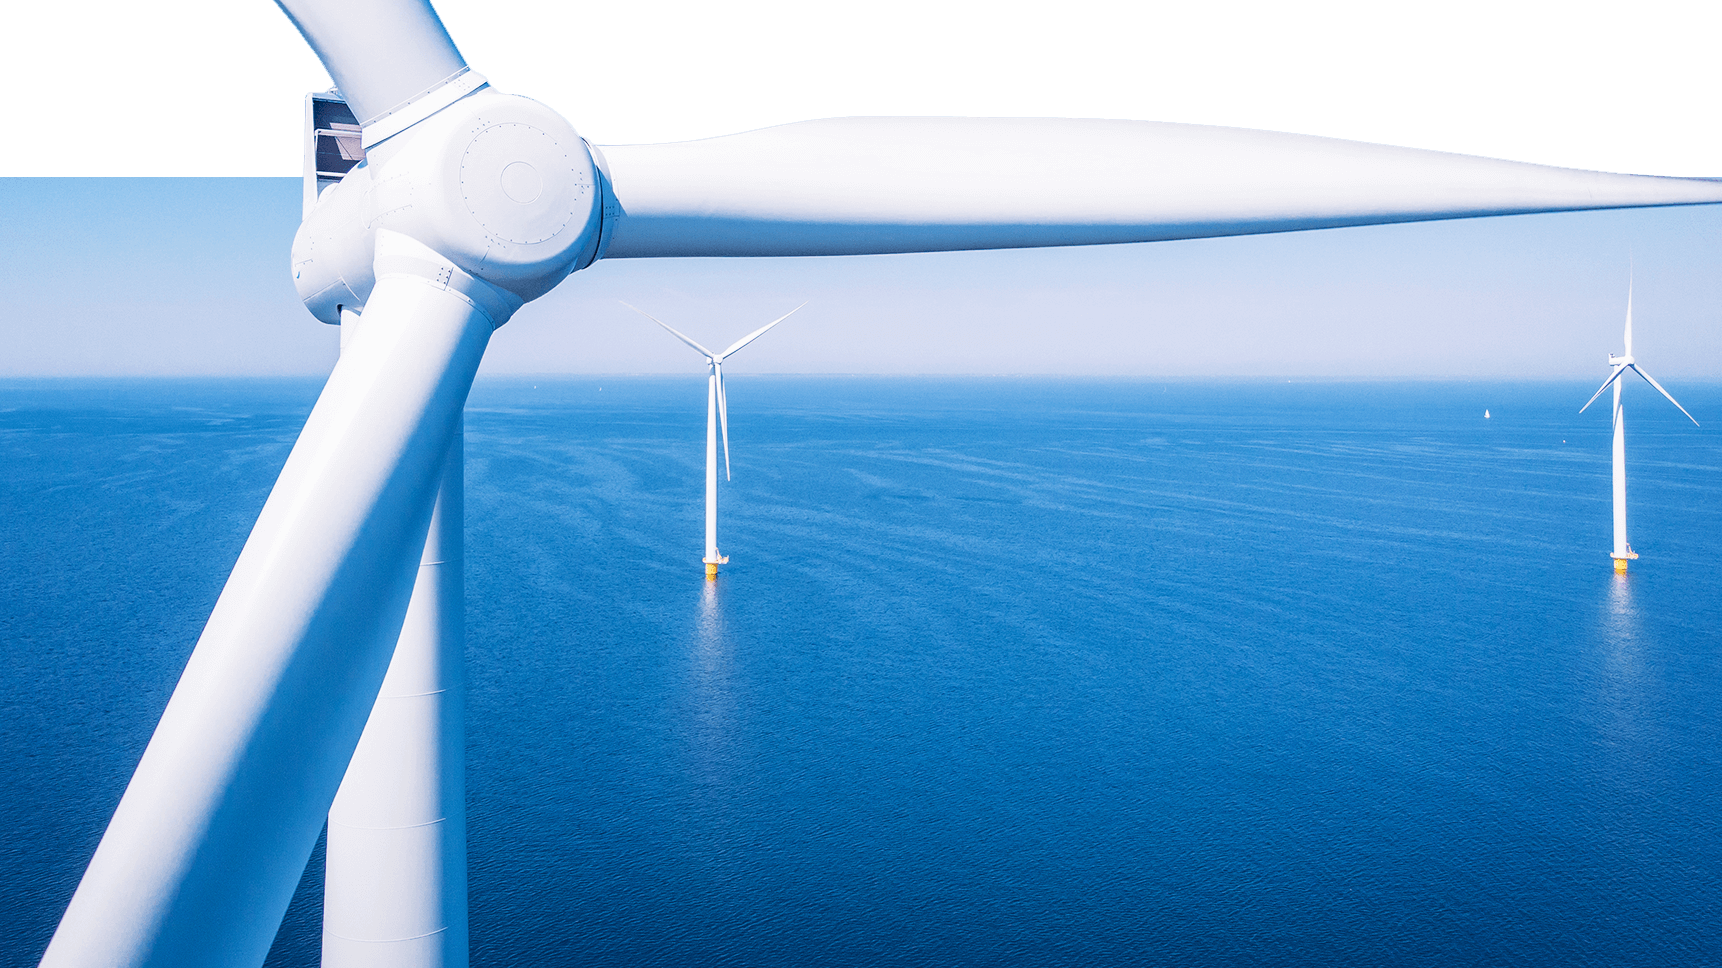 Offshore wind farms present extreme working environments